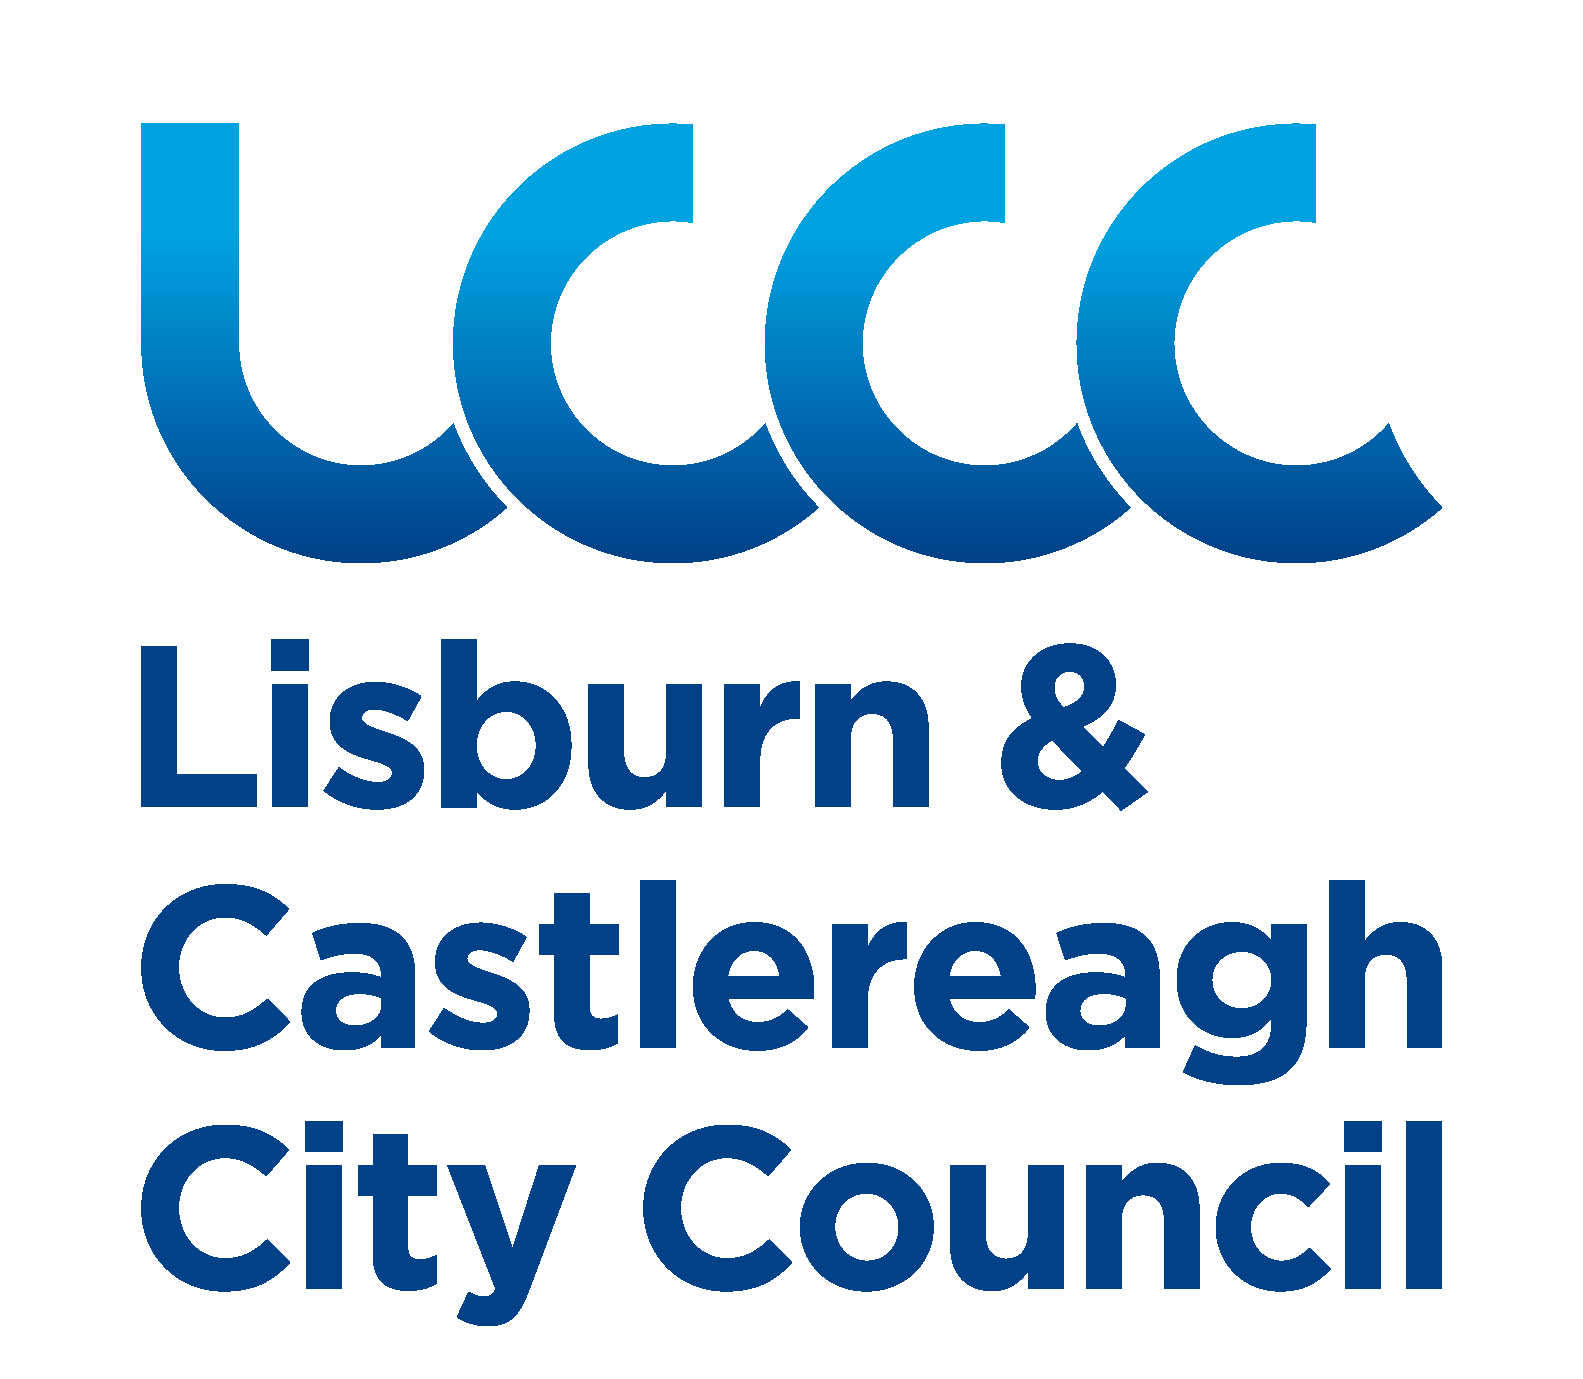 lisburn-castlereagh-city-council